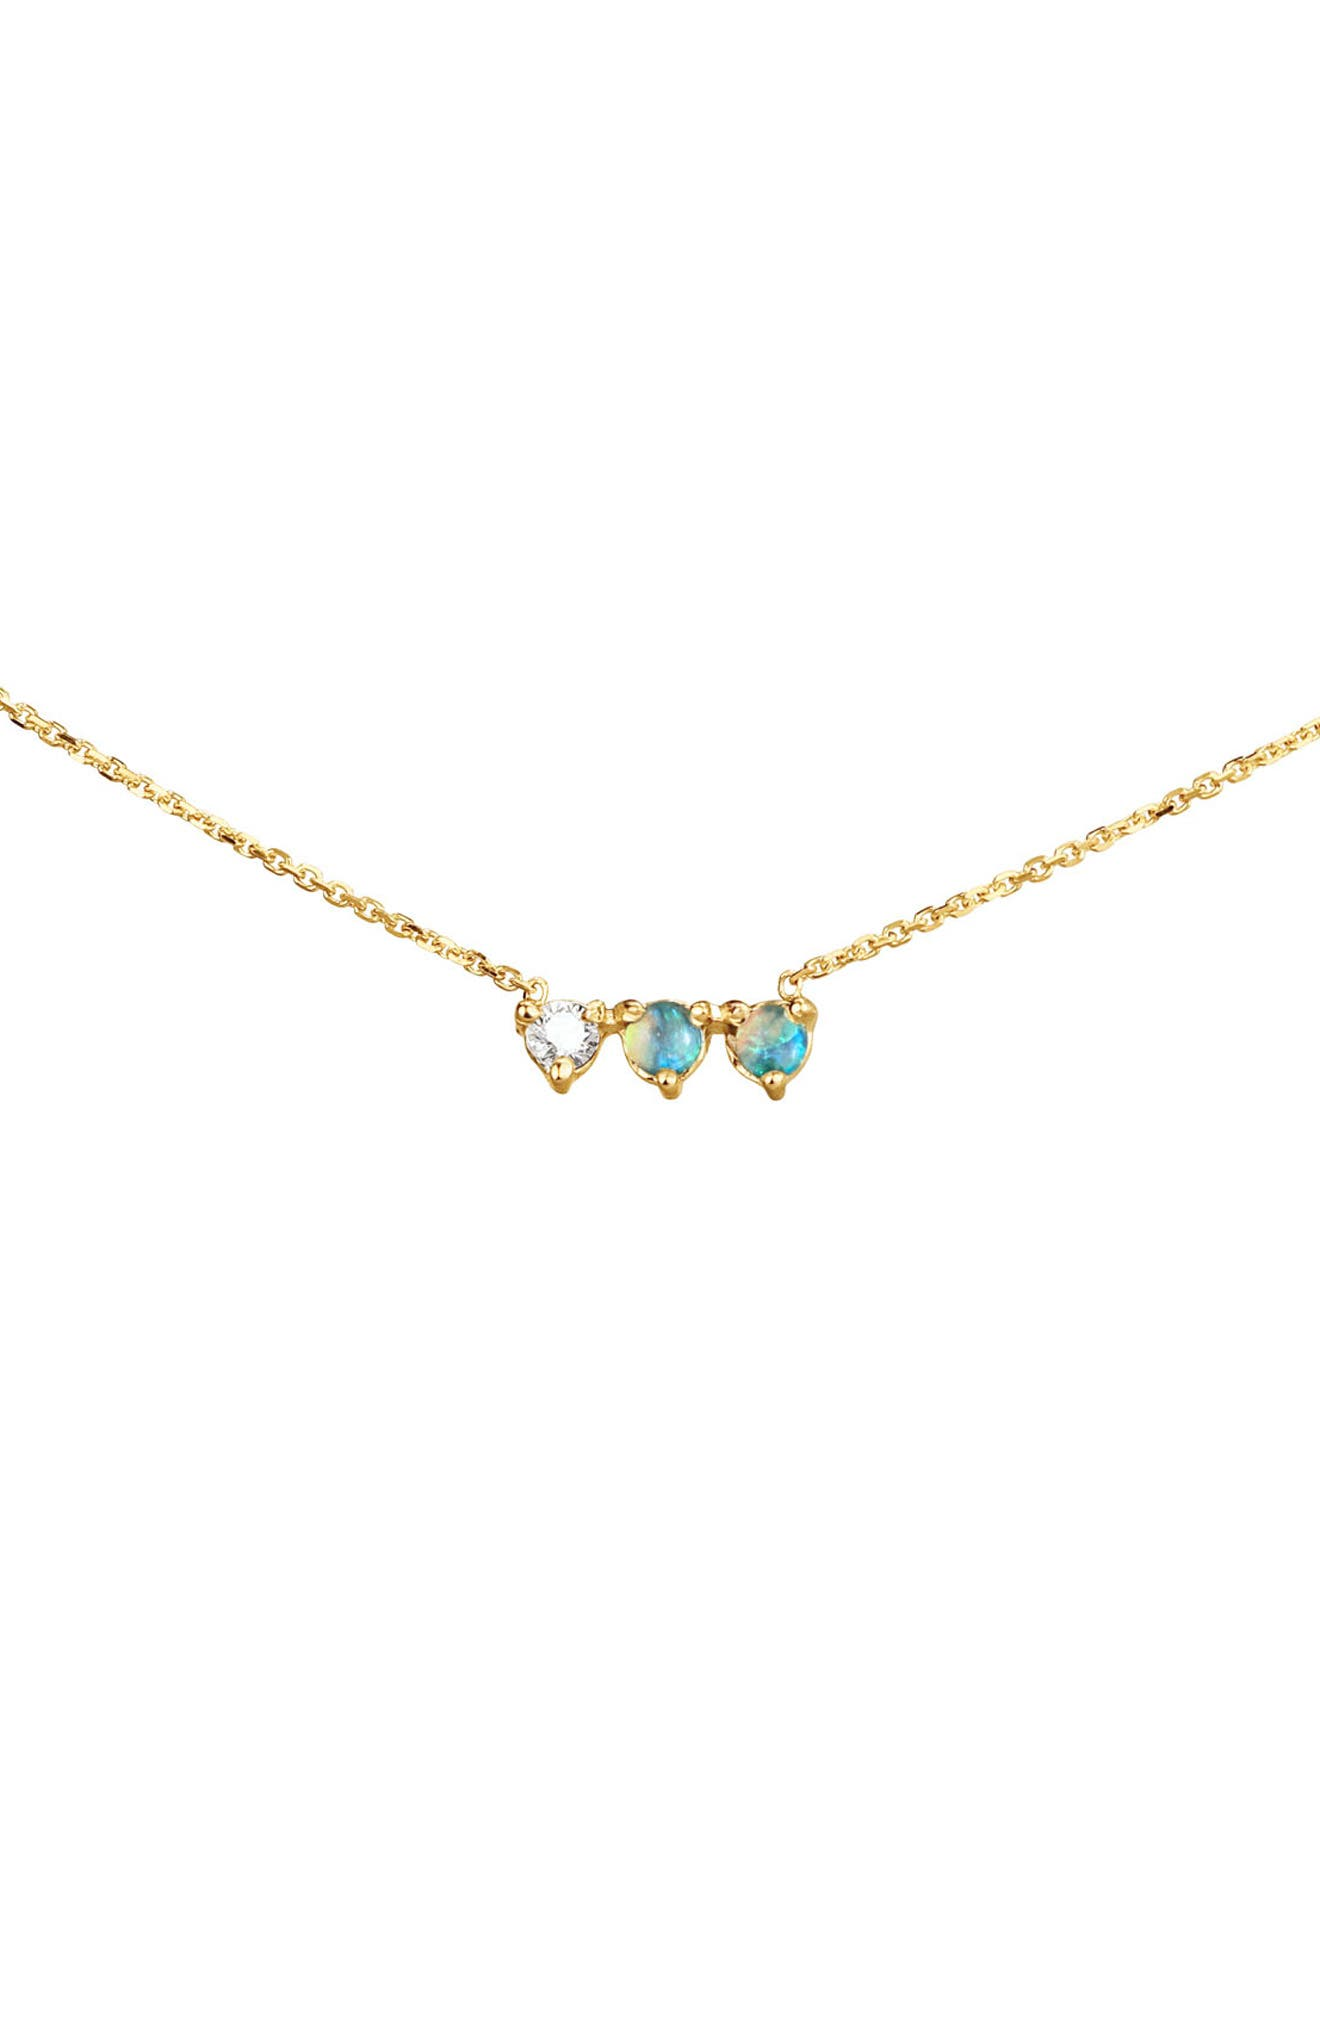 Three Points Opal & Diamond Necklace,                             Main thumbnail 1, color,                             14KT GOLD